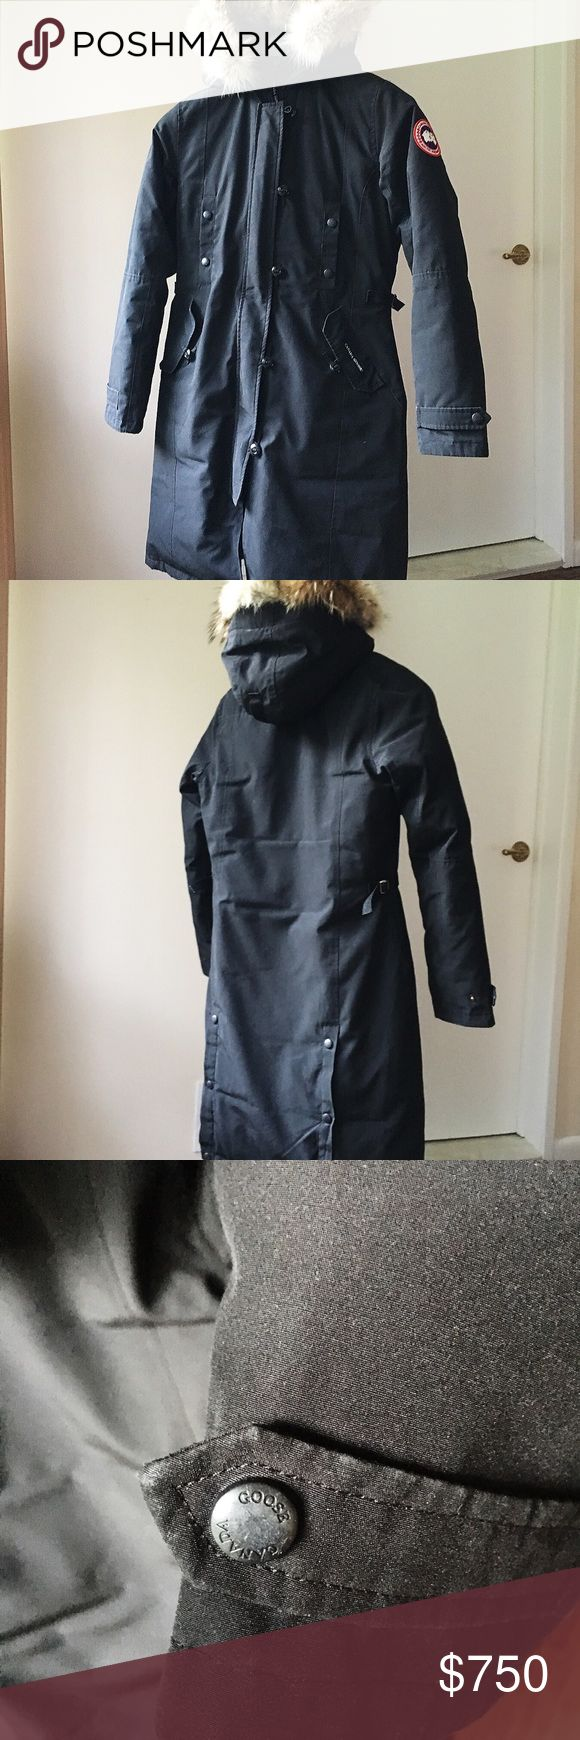 Canada Goose Kensington down jacket in black Authentic. Bought it from Saks. Has sign of wear on sleeves and pockets. Looks great and warm. Real fur on hood and it's removable. From pet free smoke free home. No trade please. Canada Goose Jackets & Coats Puffers